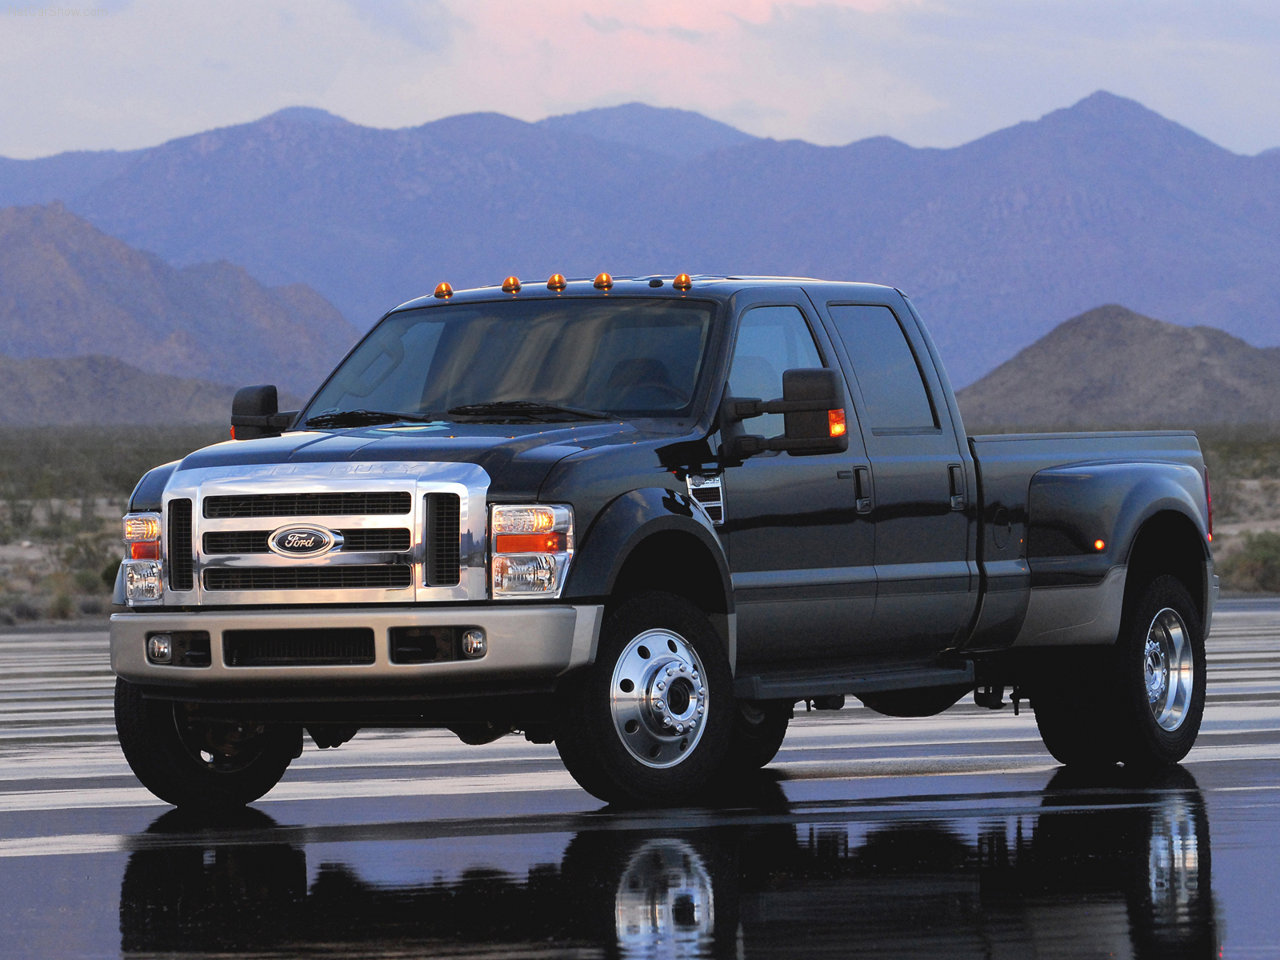 Ford f-450 photo - 4